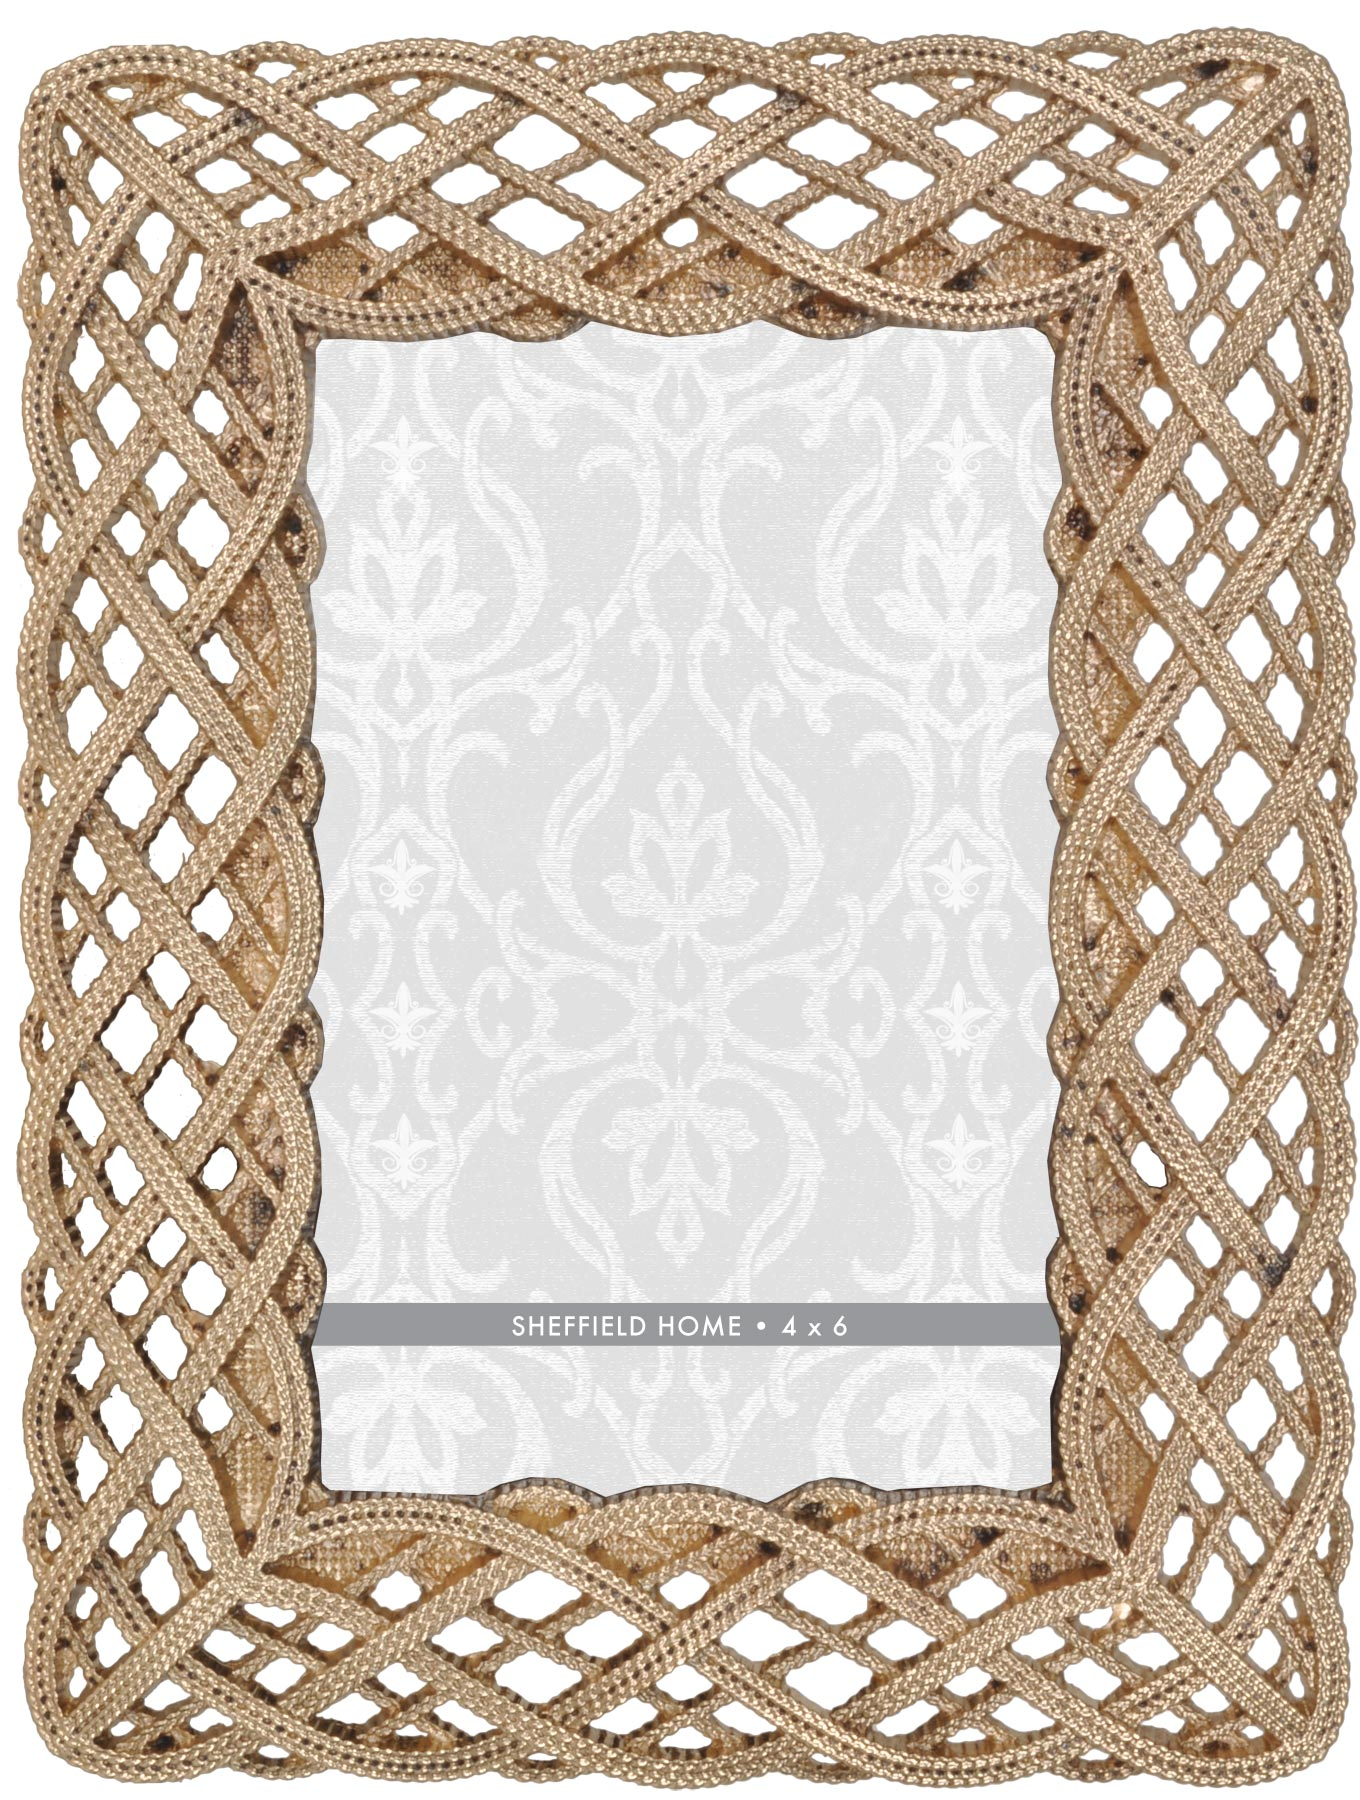 Tabletop Frame 4X6-Gold Braided Openwork